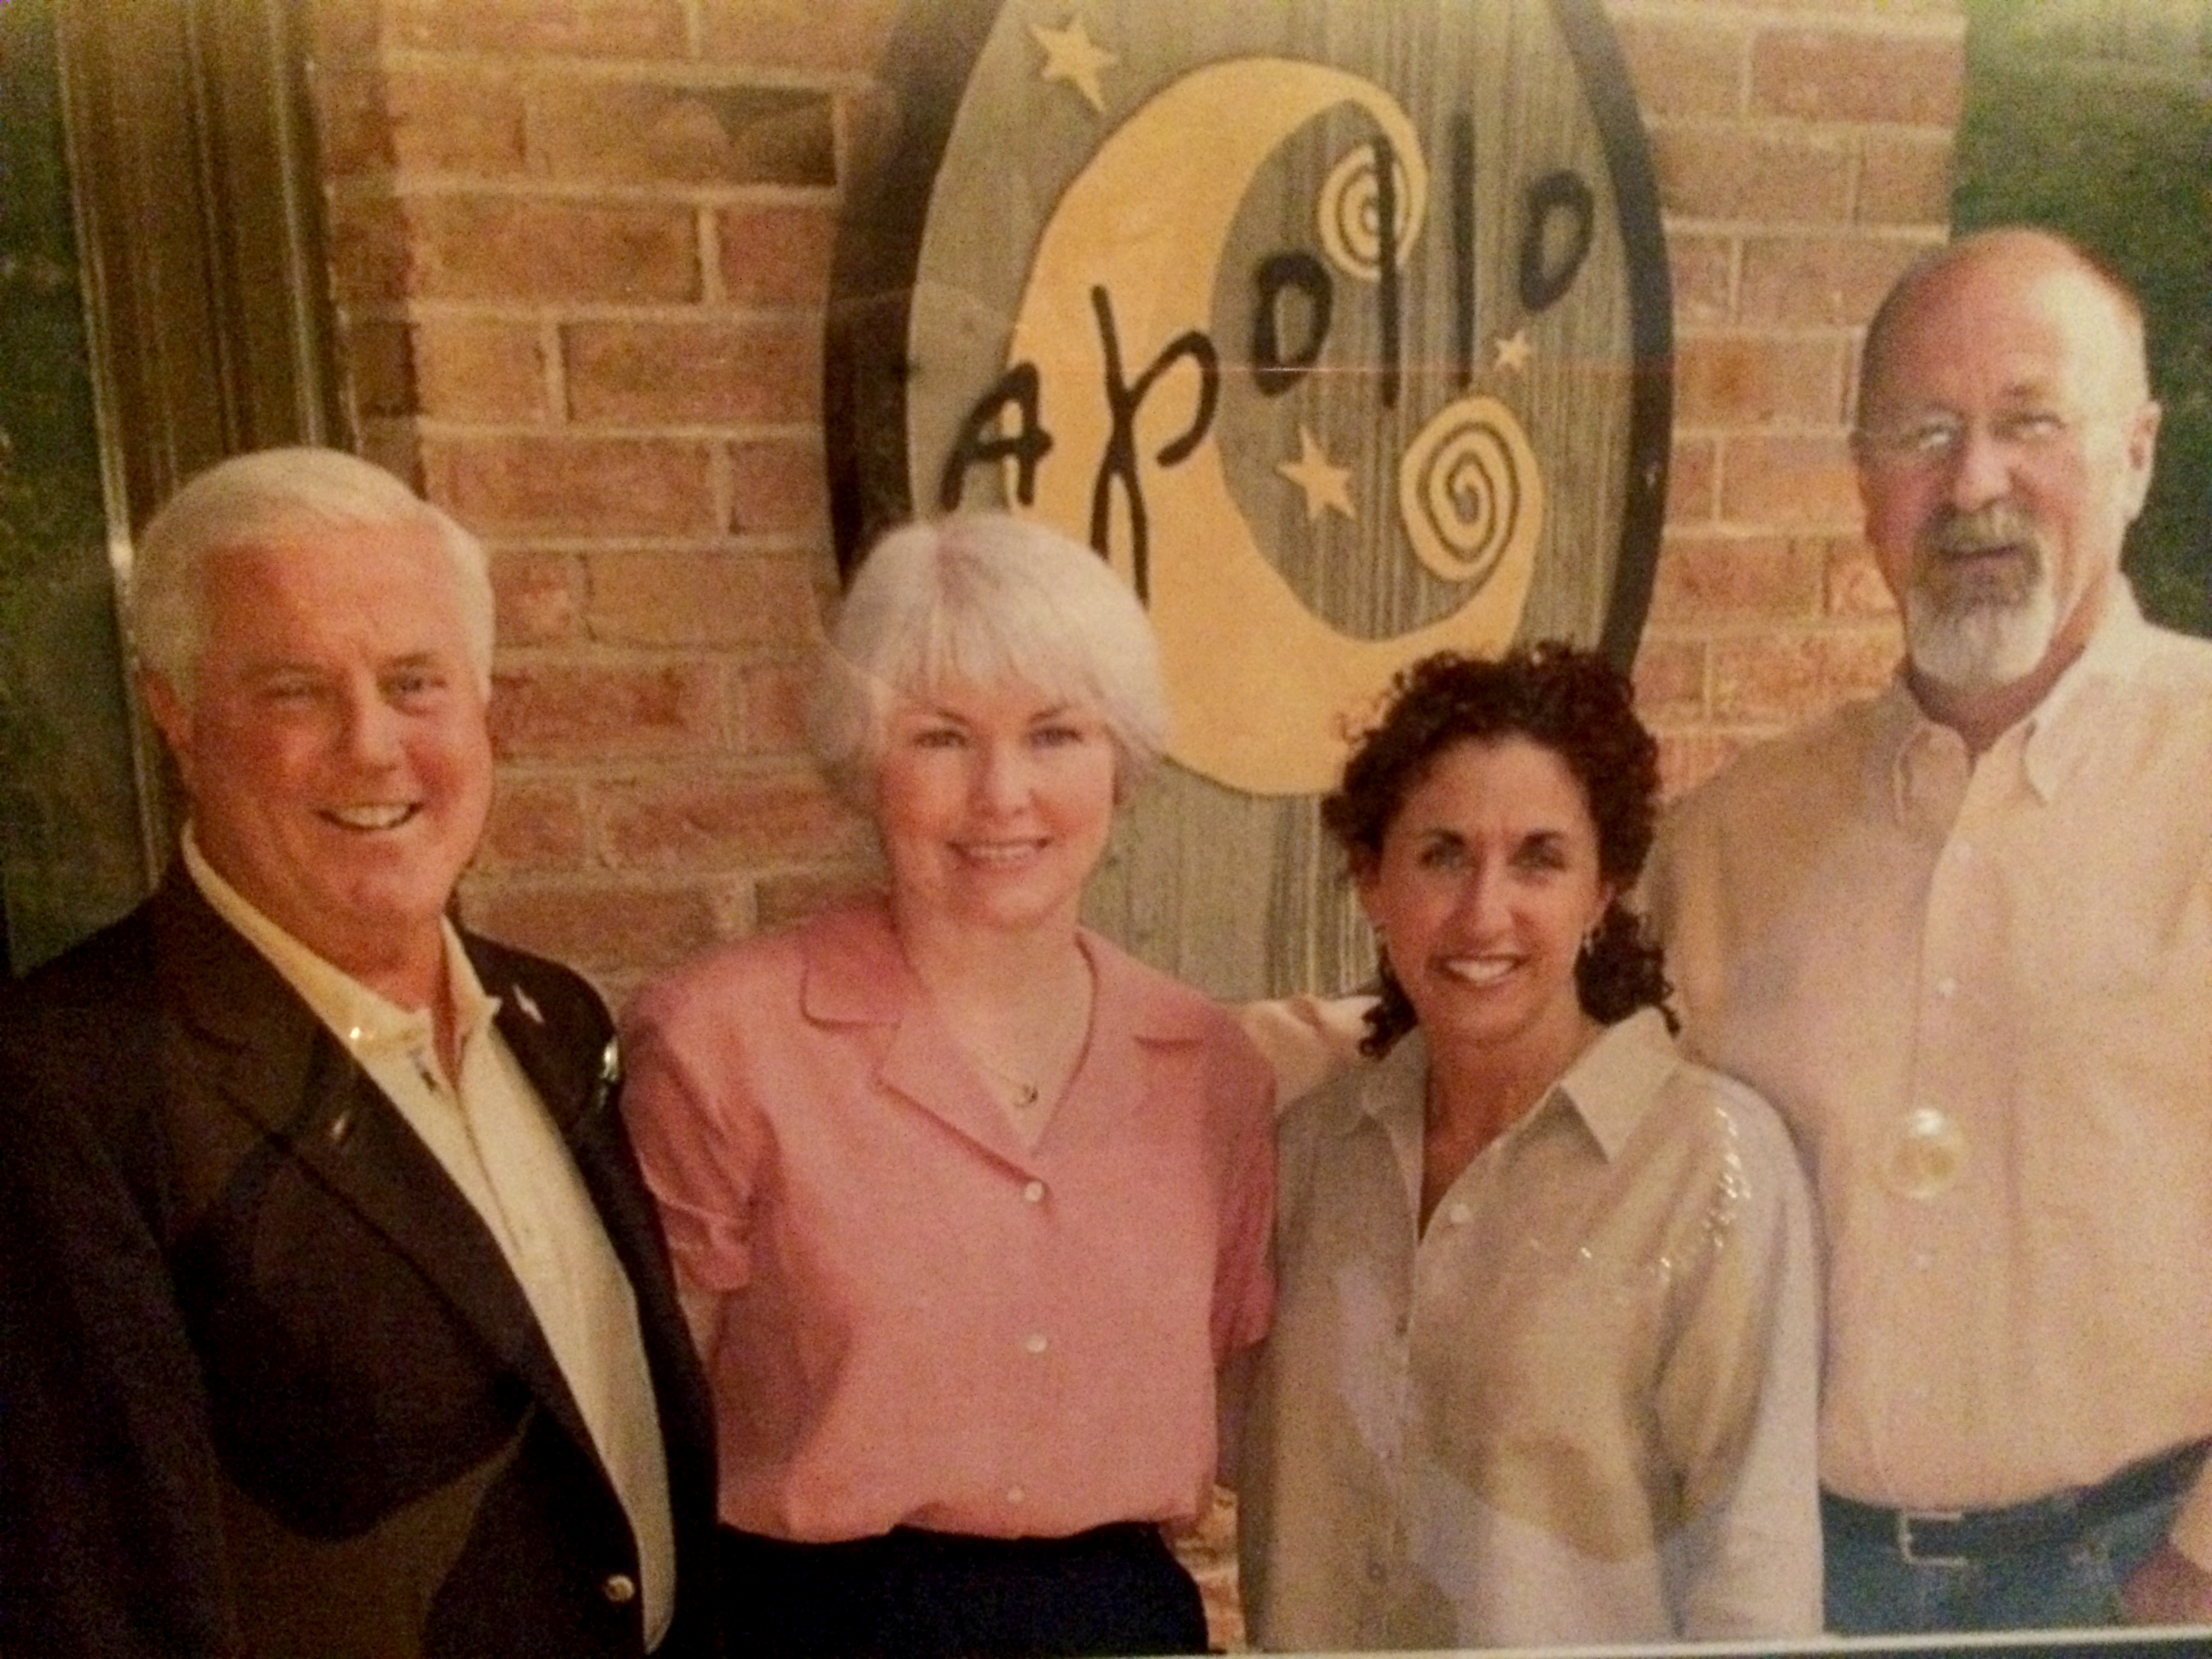 4 owners of the Apollo Grill: Tucker & Pat Lyons, Dyanne&Rod Holt